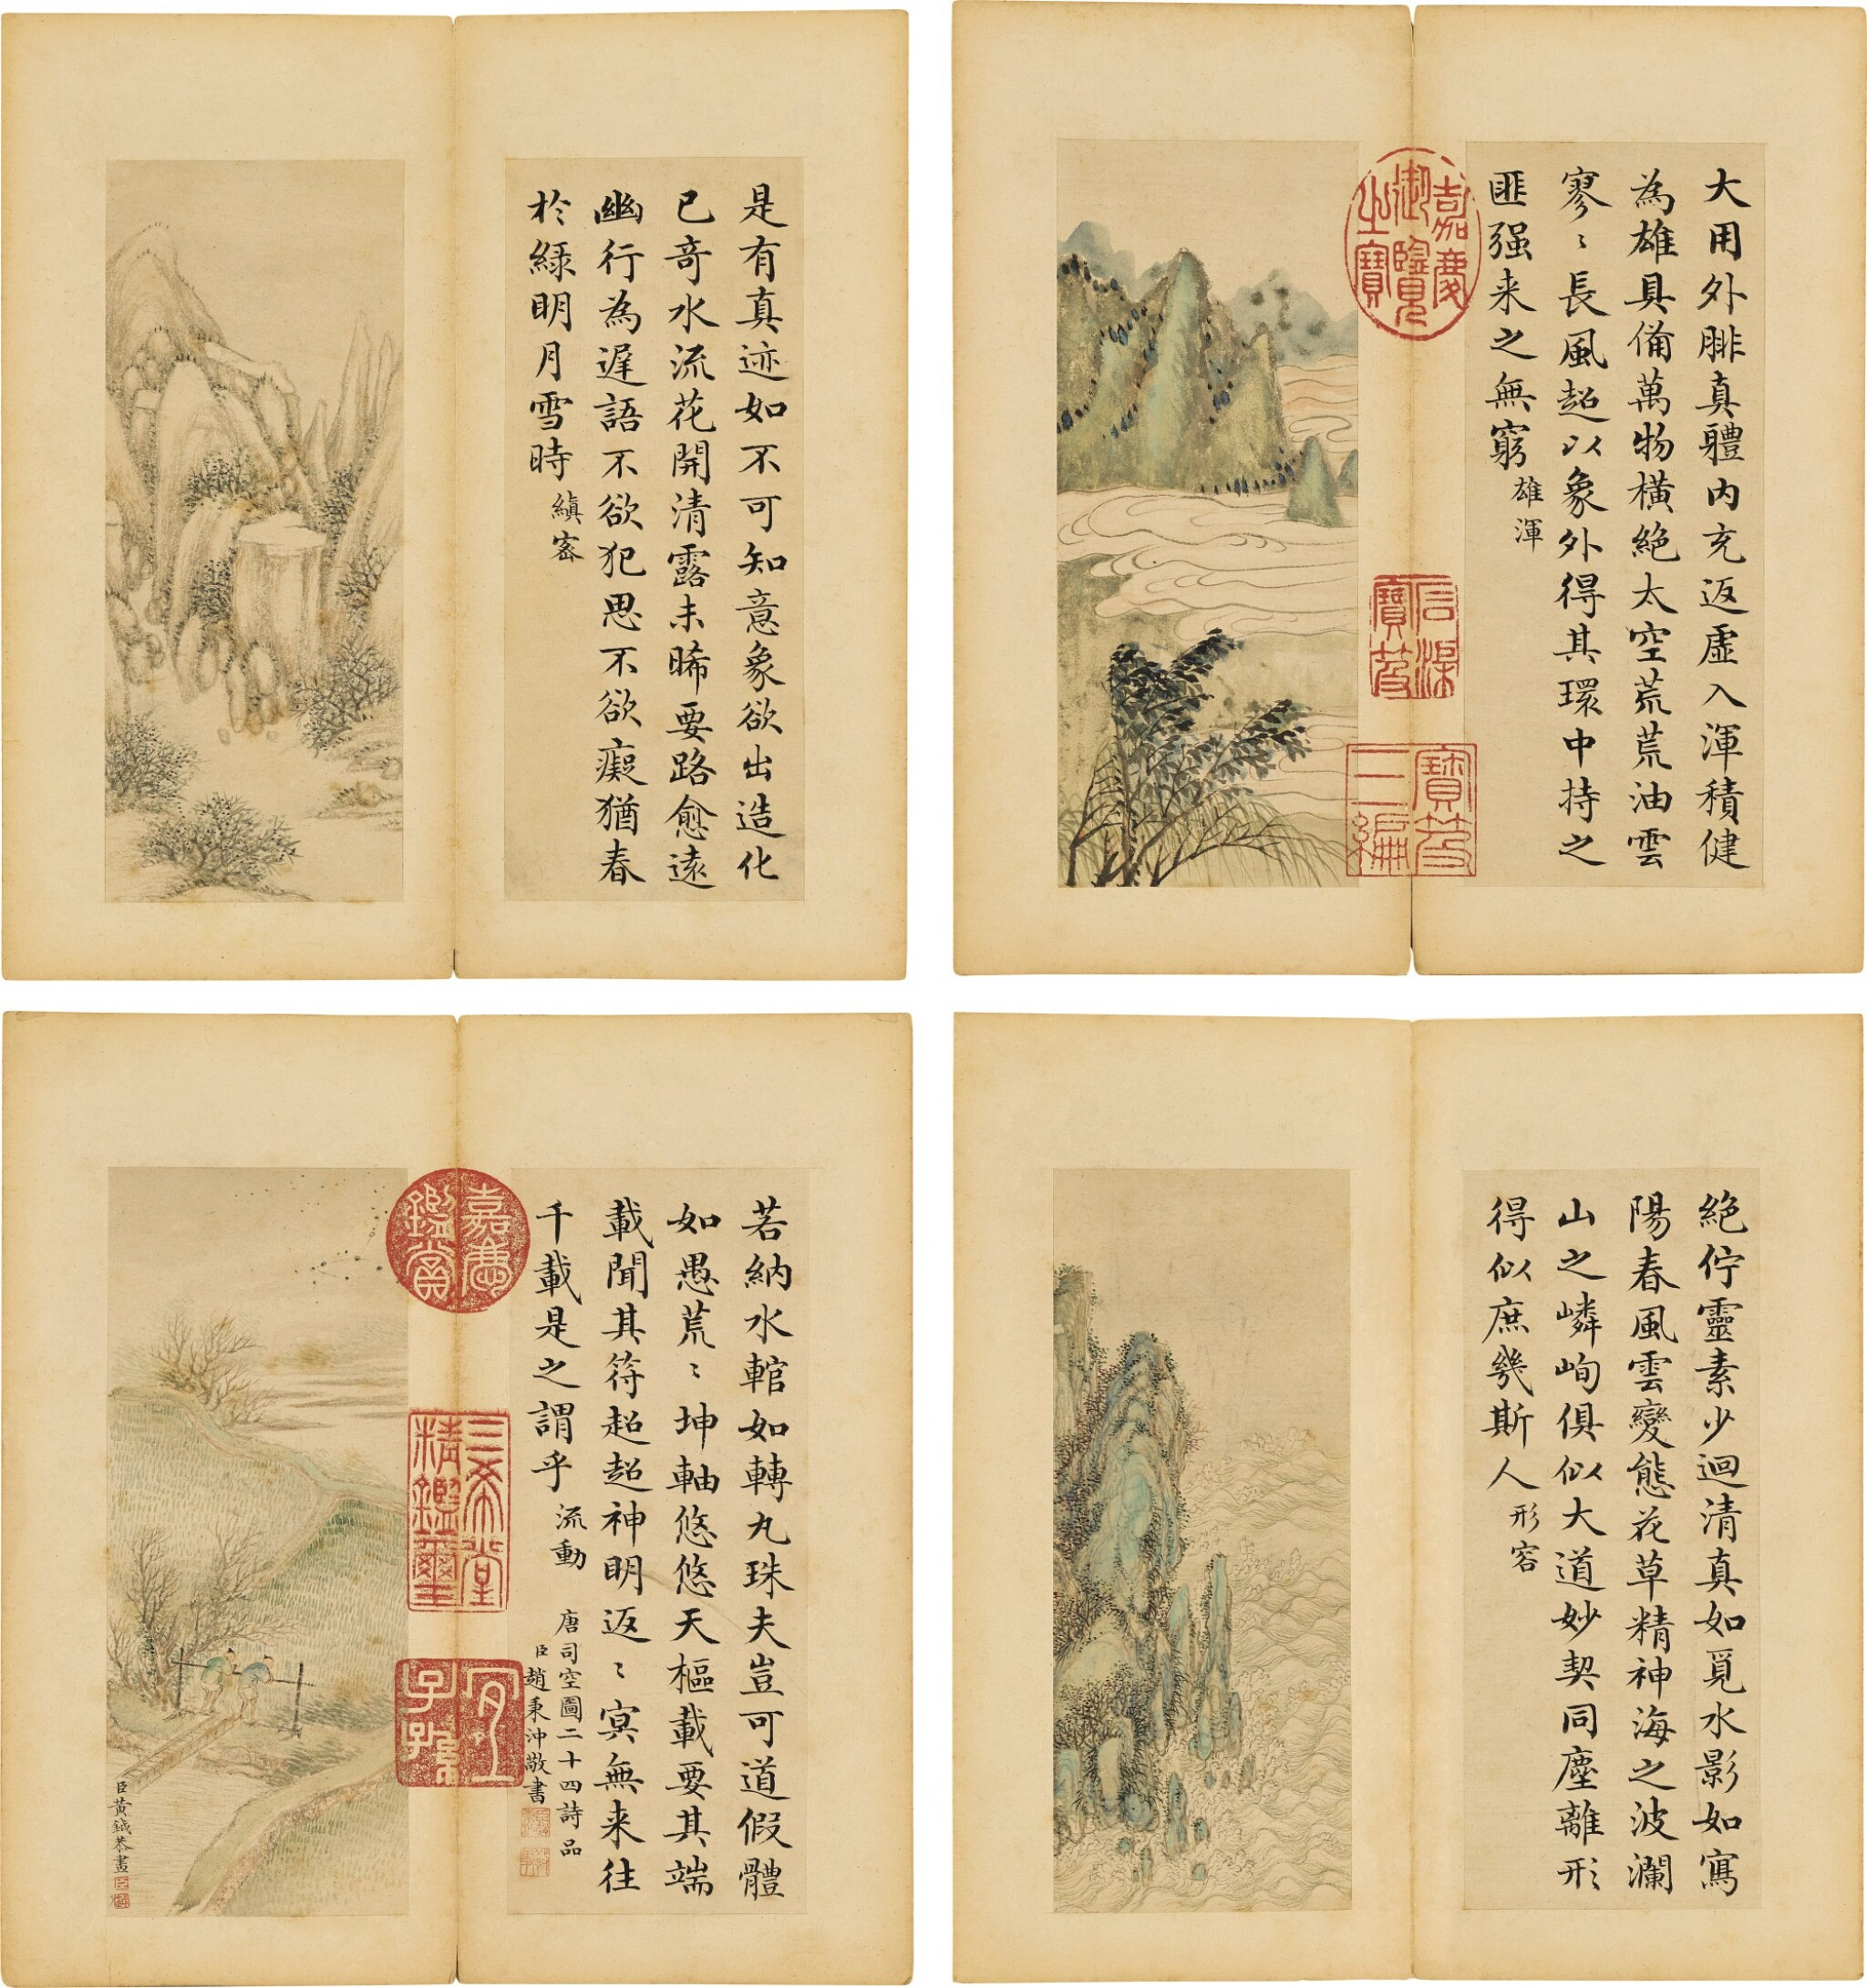 View full screen - View 1 of Lot 2544. HUANG YUE 1750-1841; ZHAO BINGCHONG 1757-1814 黃鉞、趙秉沖   LANDSCAPES AFTER SI KONGTU 司空圖二十四詩品冊.